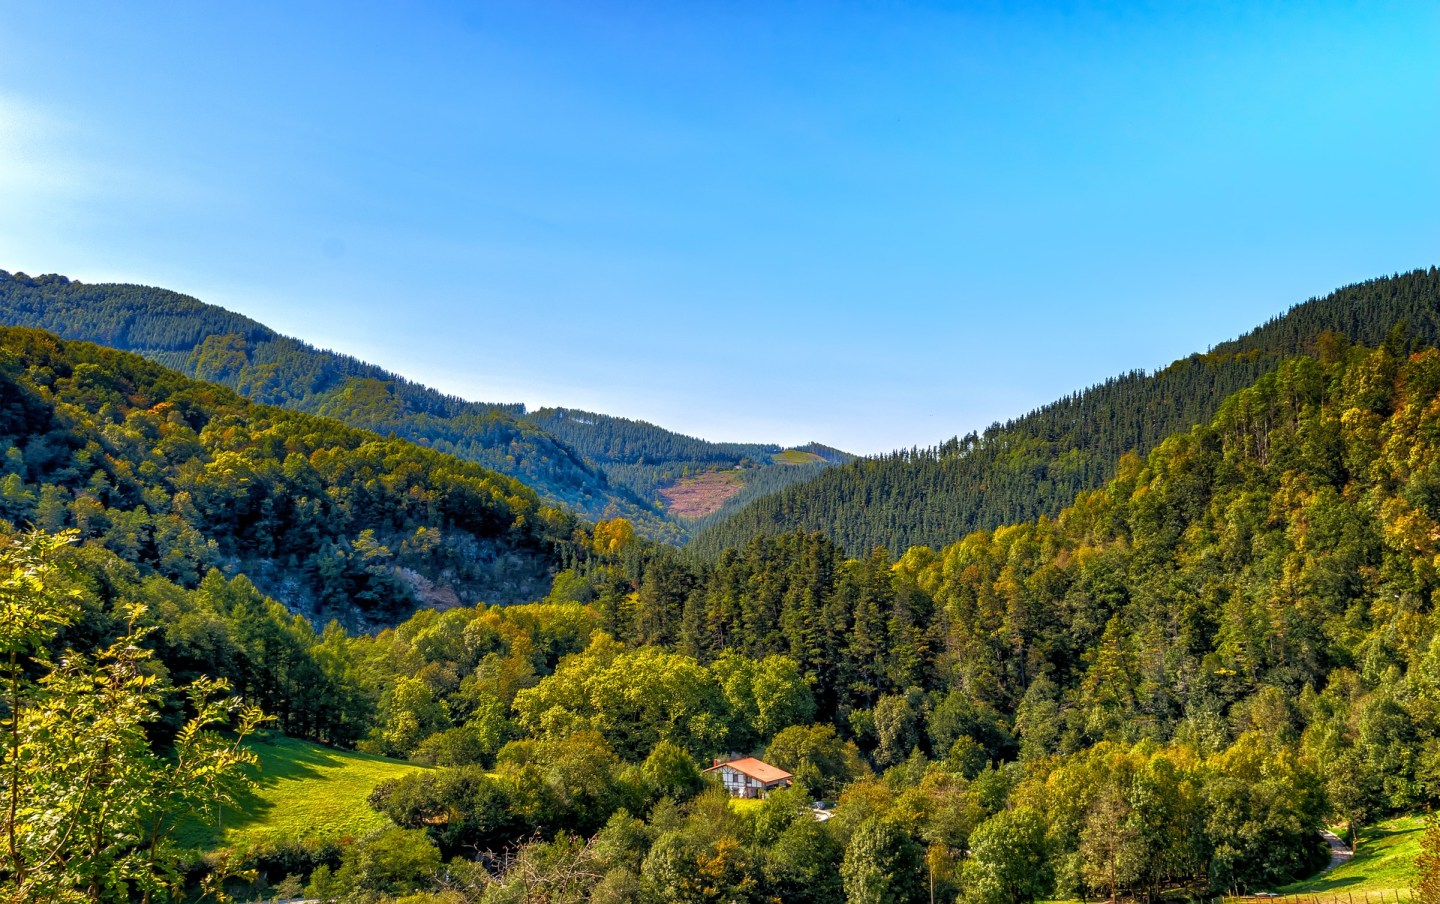 Lush green forests in Northern Spain